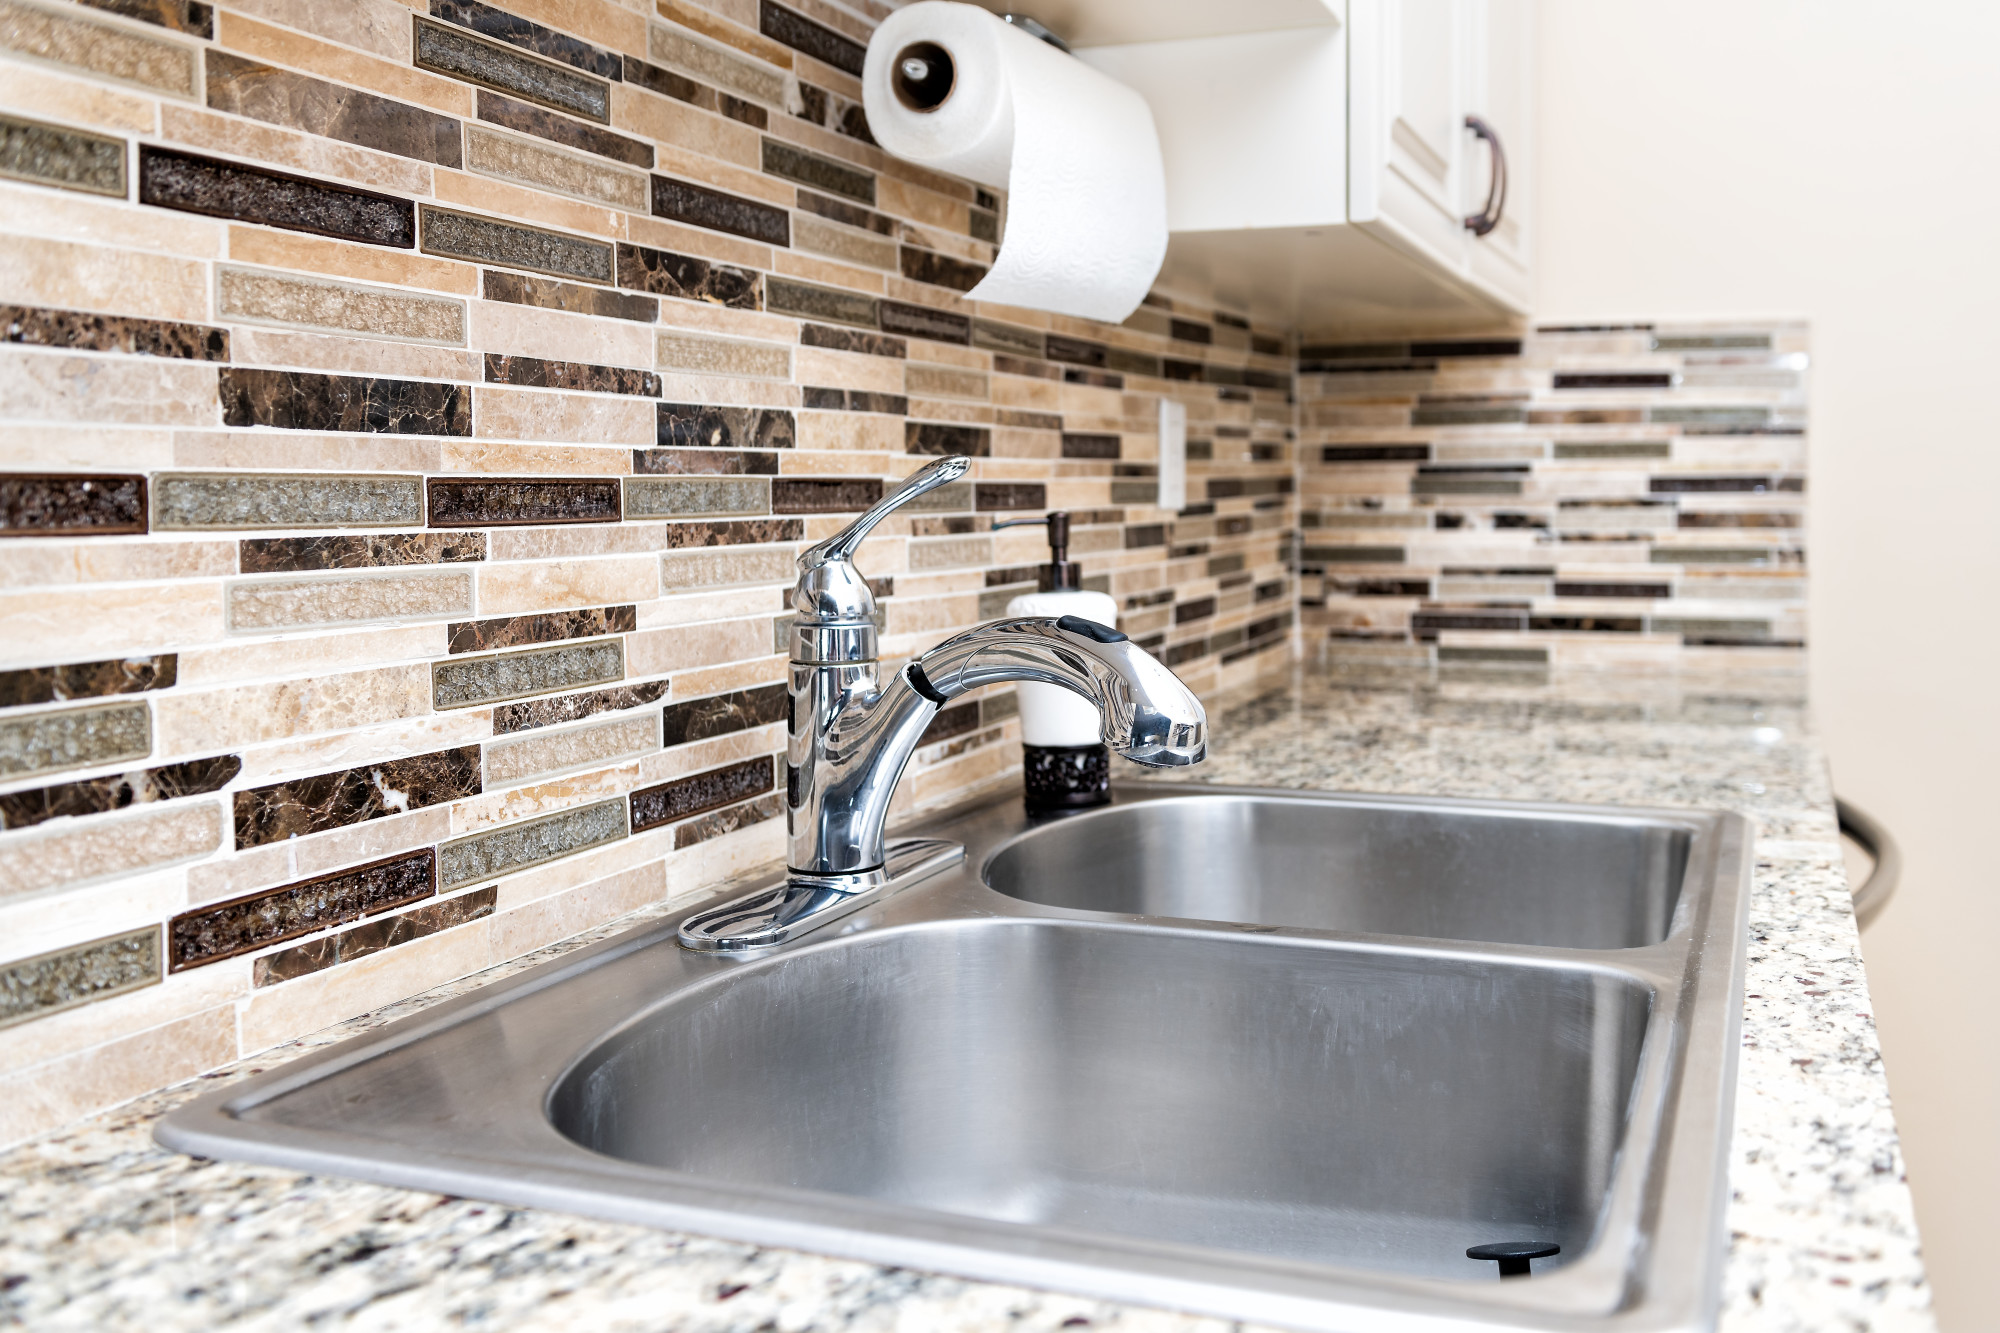 Kitchen Sinks Types: The Best Material for Your Kitchen Sink